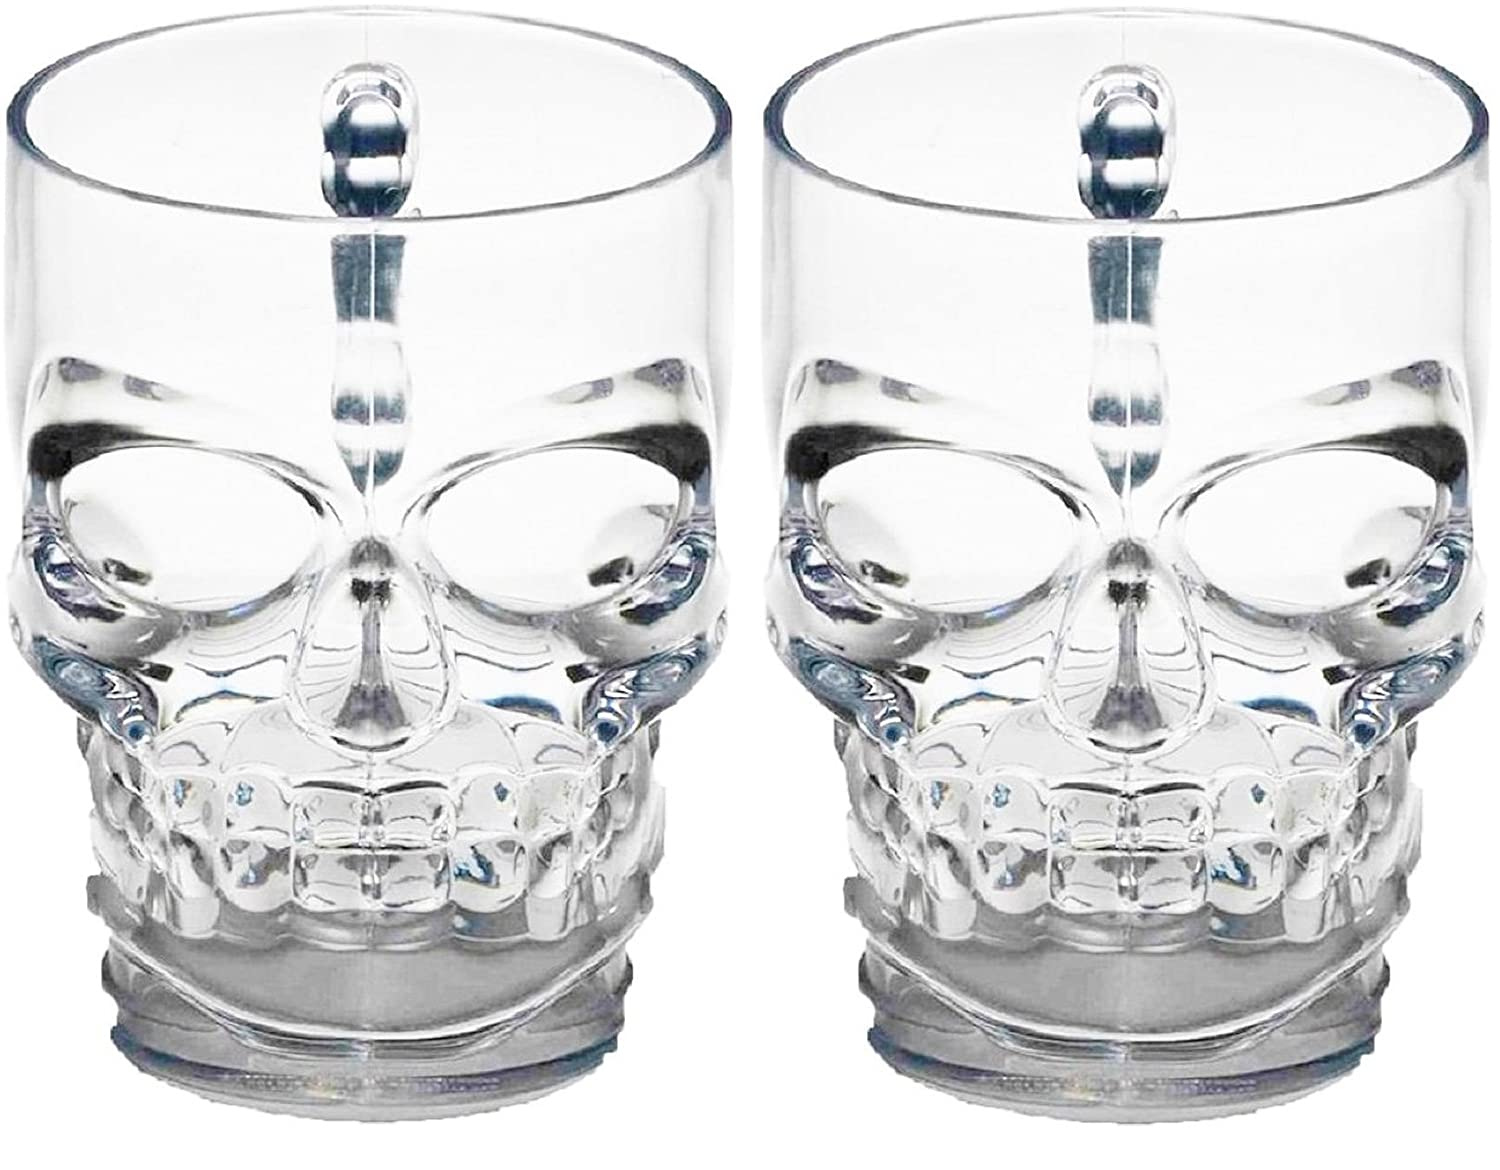 Circleware 76980 Skull Face Beer Mug Drinking Glasses with Handle, Set of 2, Heavy Base Funny Entertainment Glassware for Water, Juice and Halloween Decorations Beverage Gifts, 18 oz